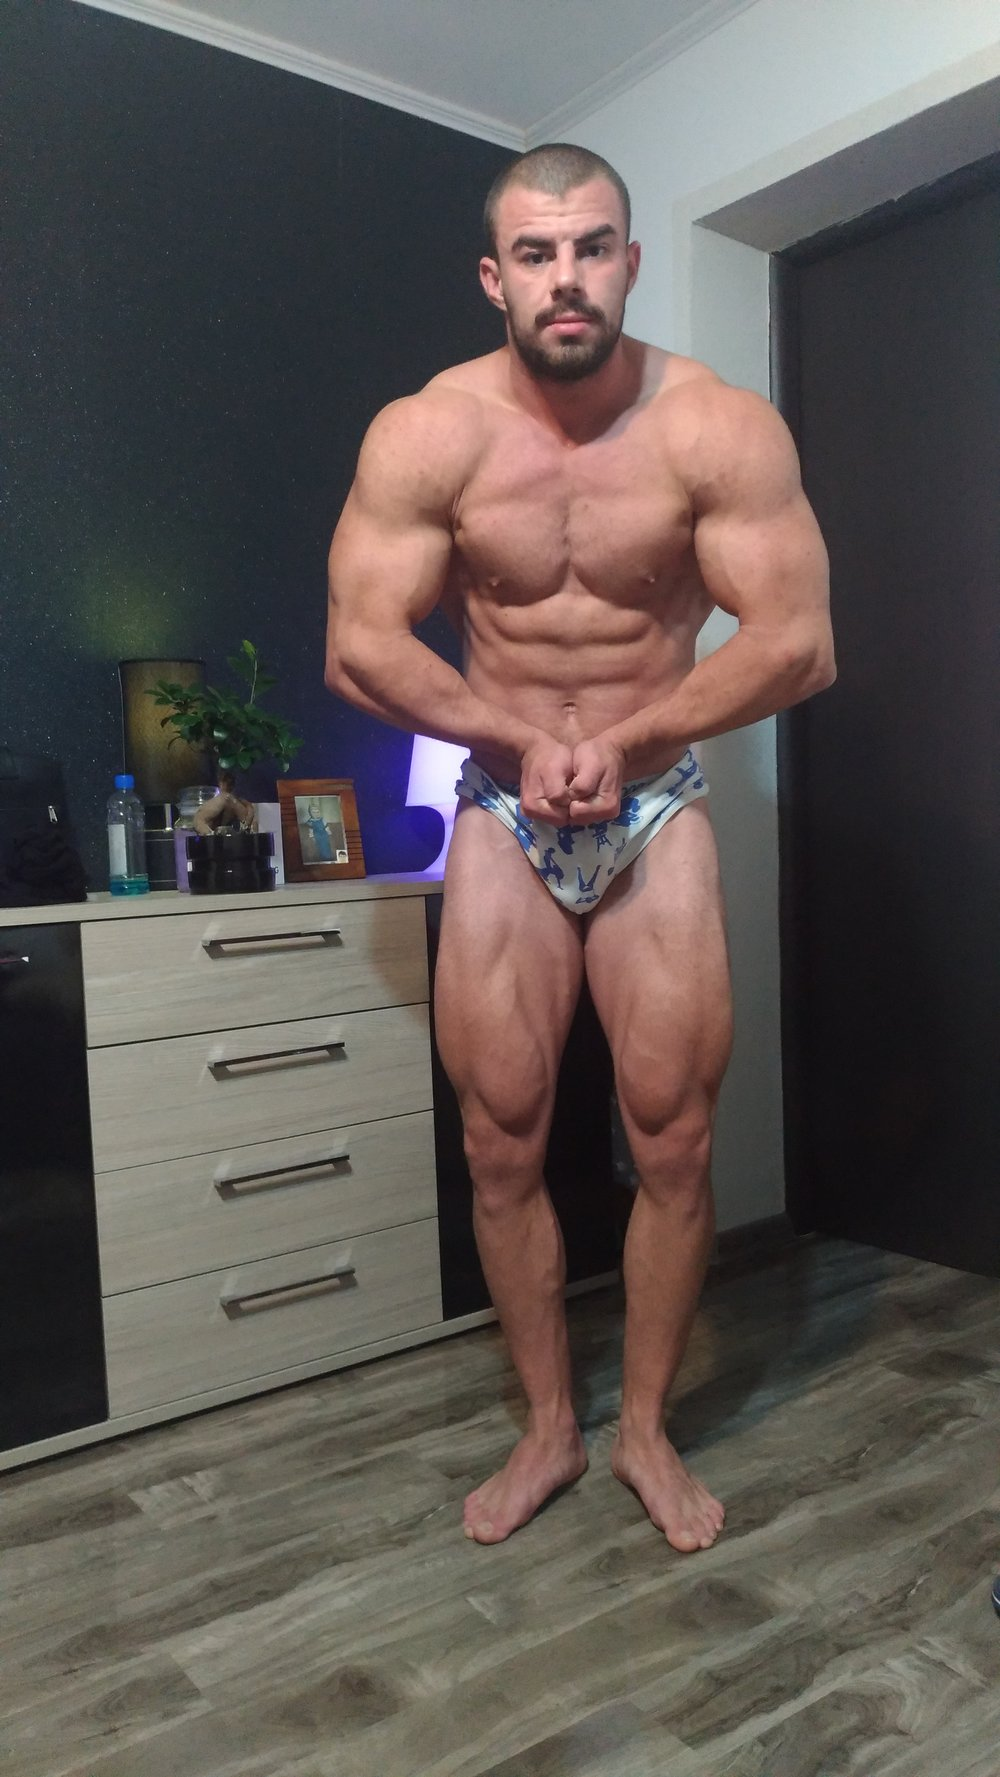 - Competition ready, after several weeks of diet